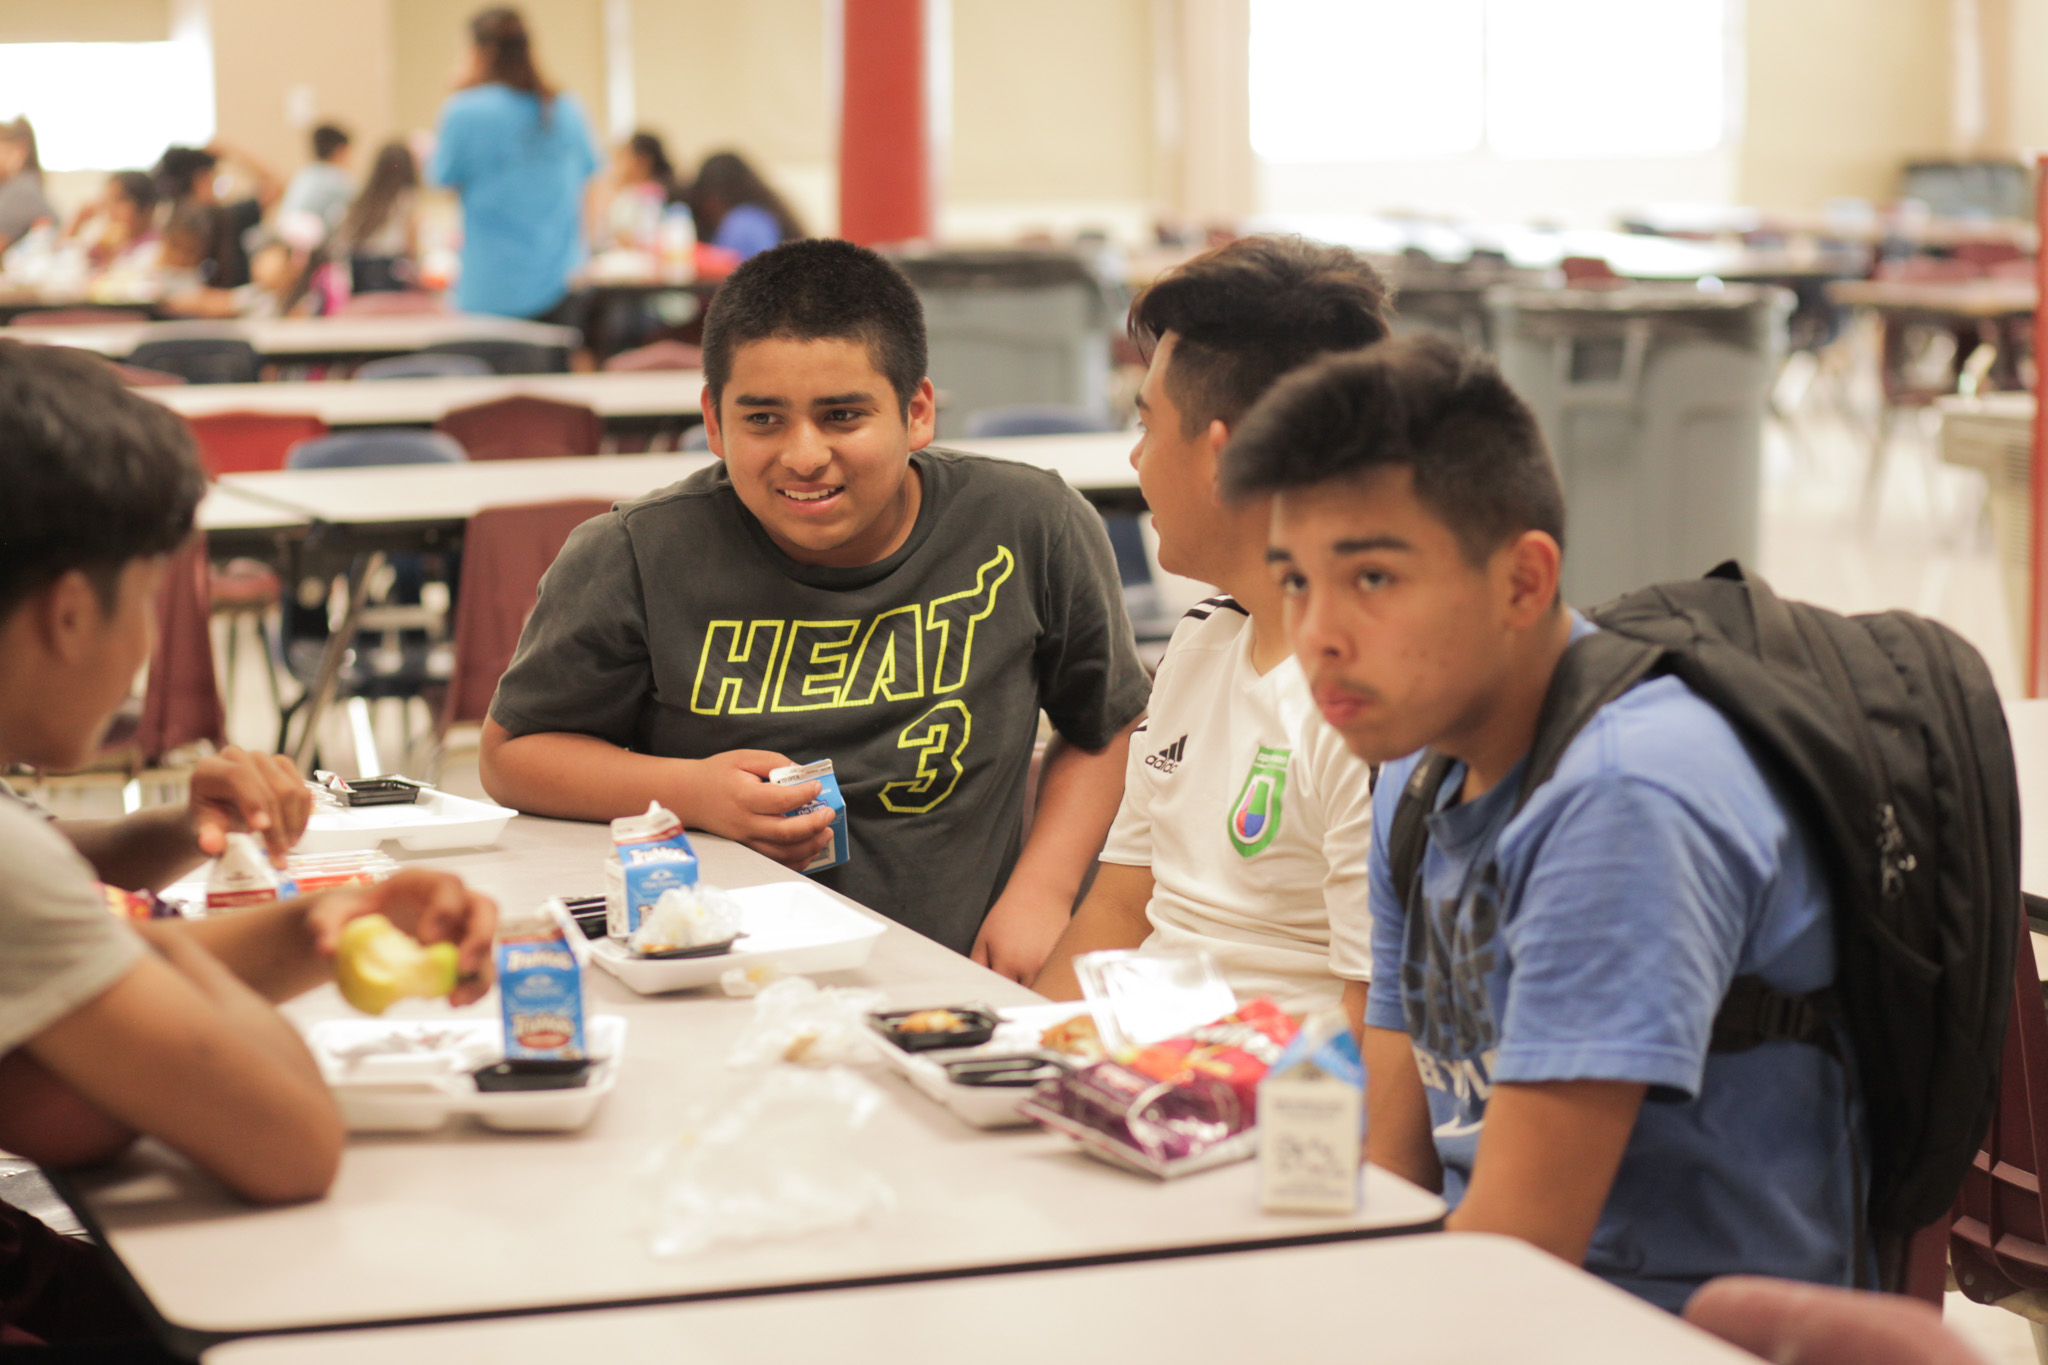 The program also provides meals for summer programs and camps in the area.